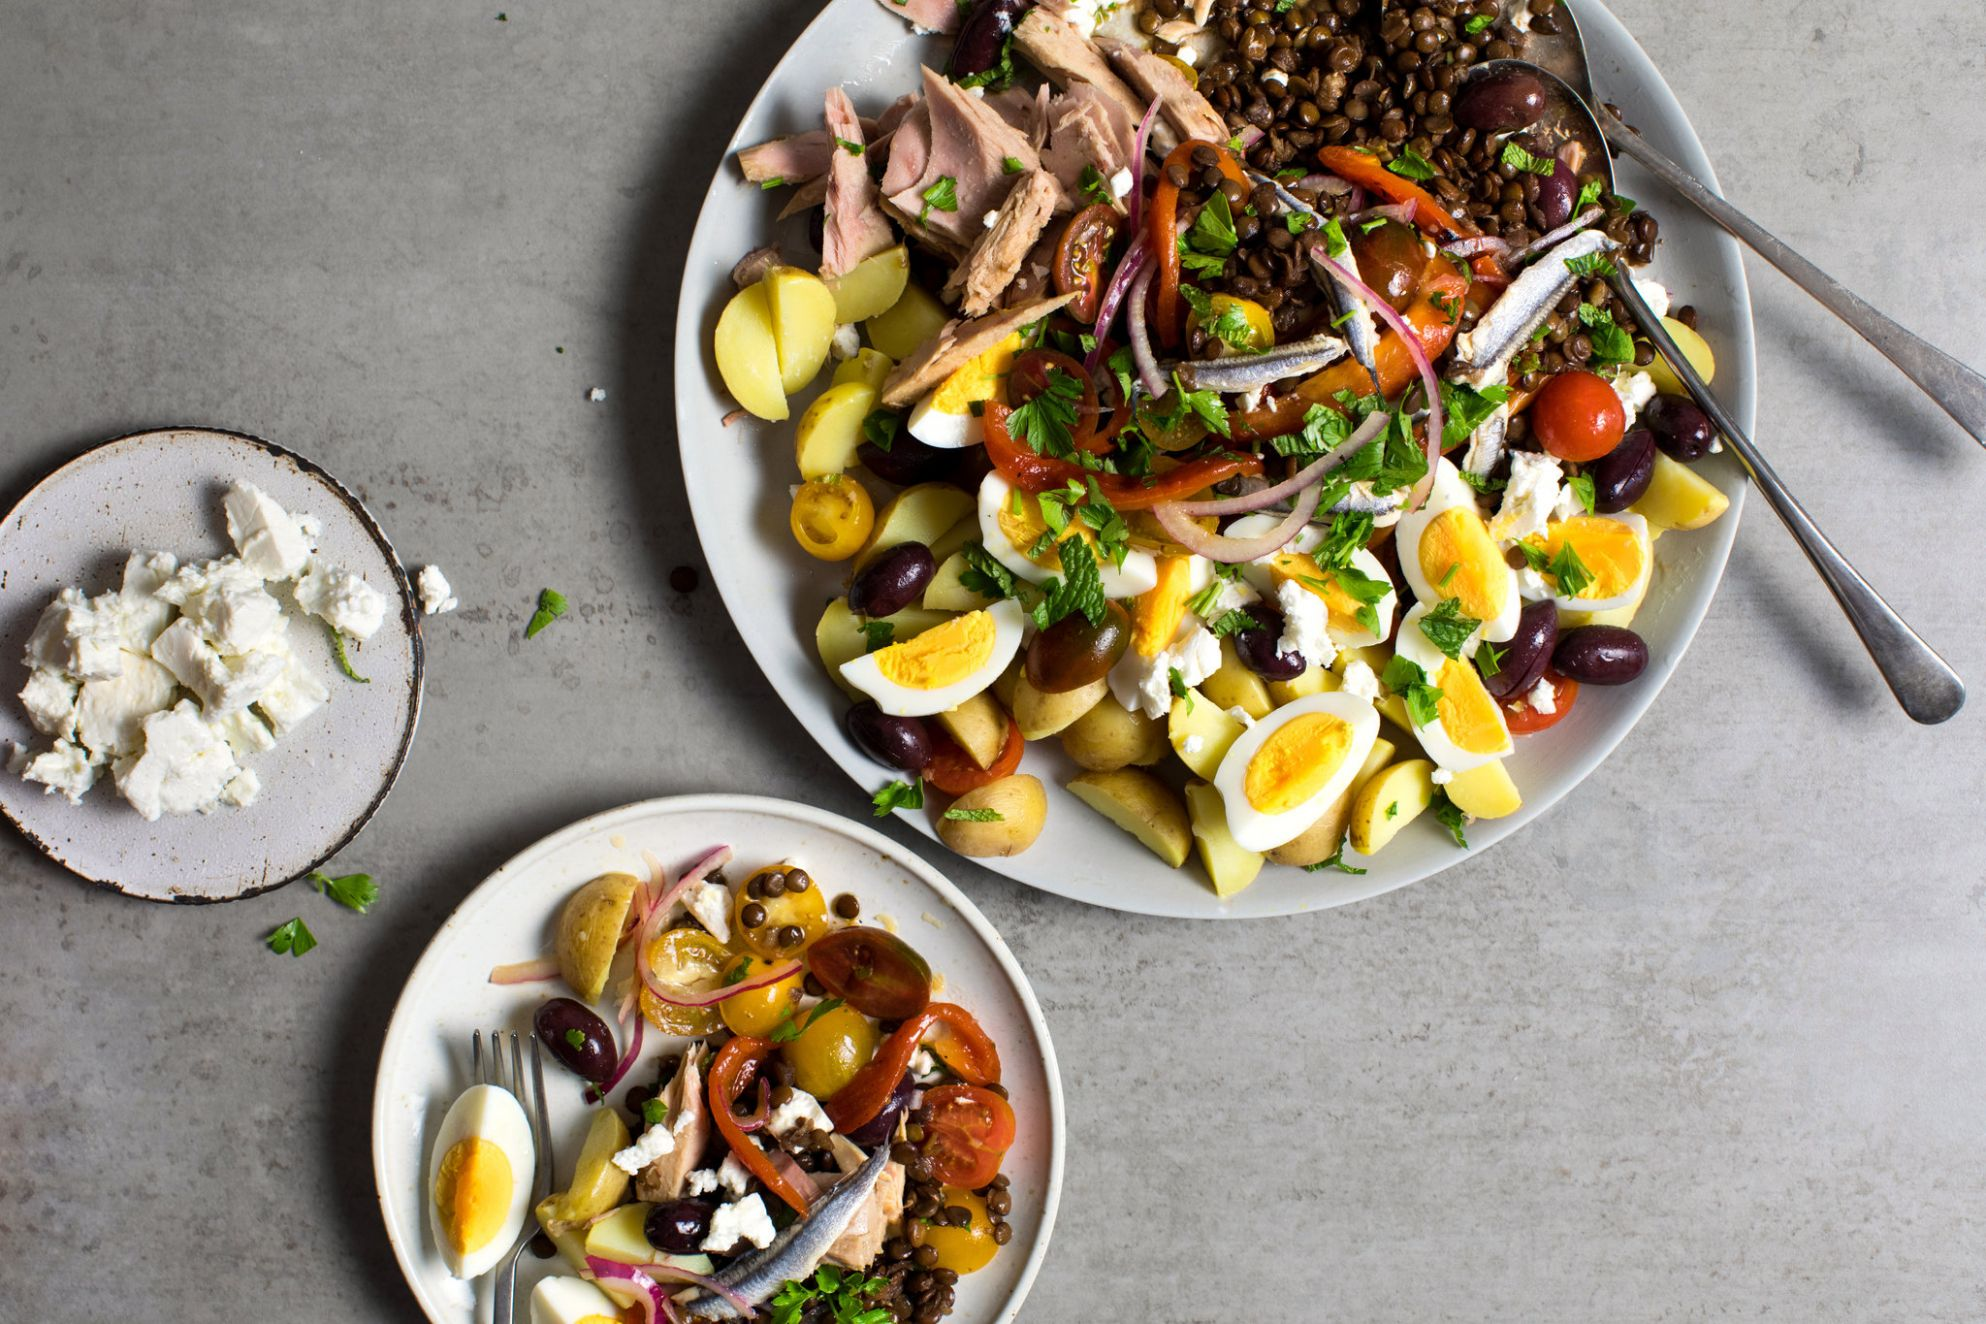 Lentil Salad Saves the Picnic - The New York Times